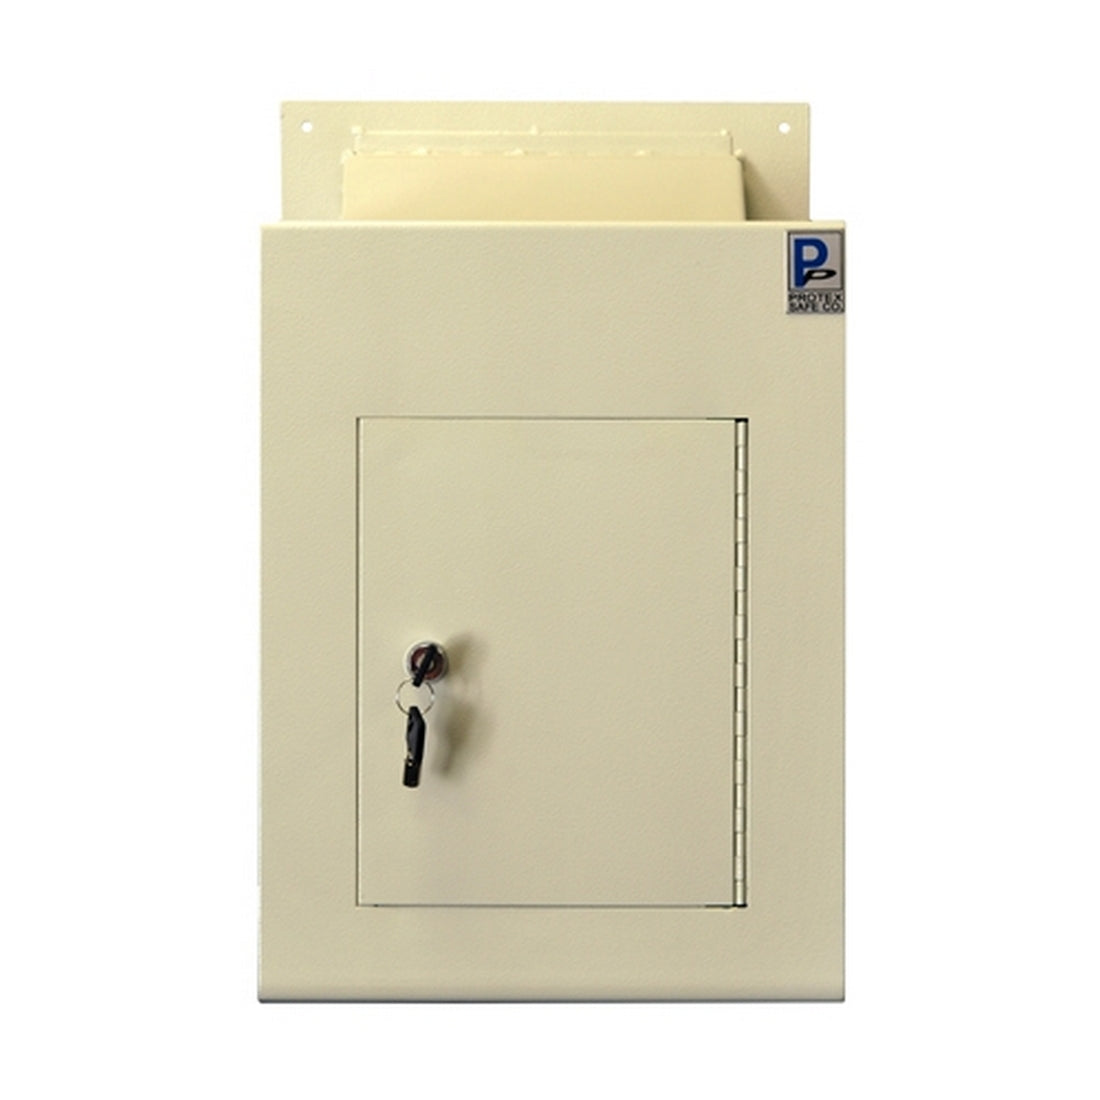 Protex Safe WDC-160 Protex Wall Drop Box w/ Adjustable Chute